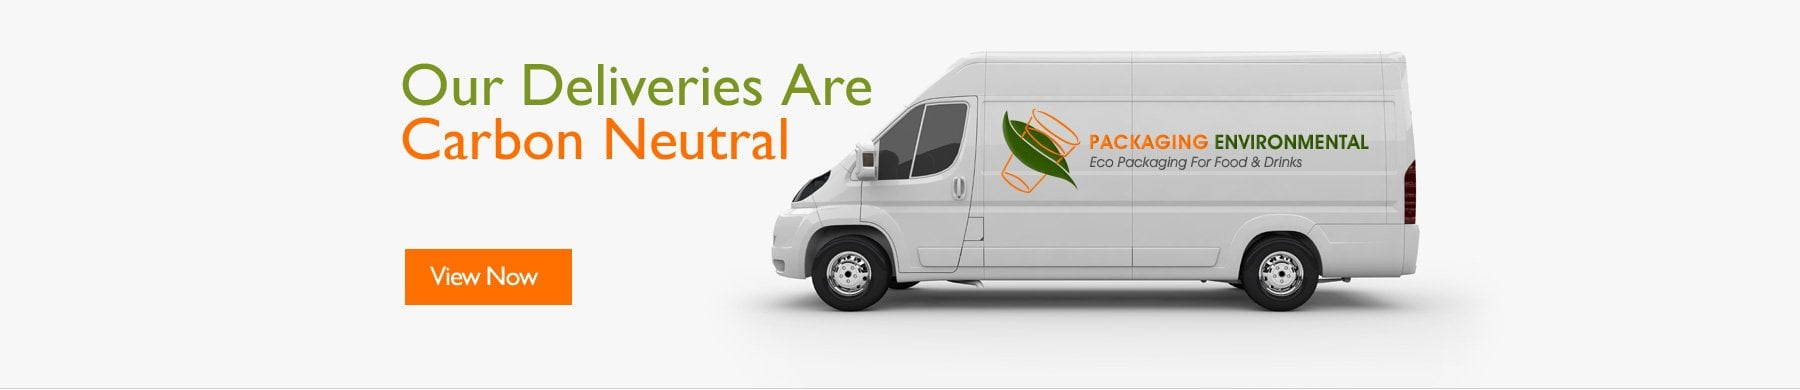 Carbon Neutral Deliveries